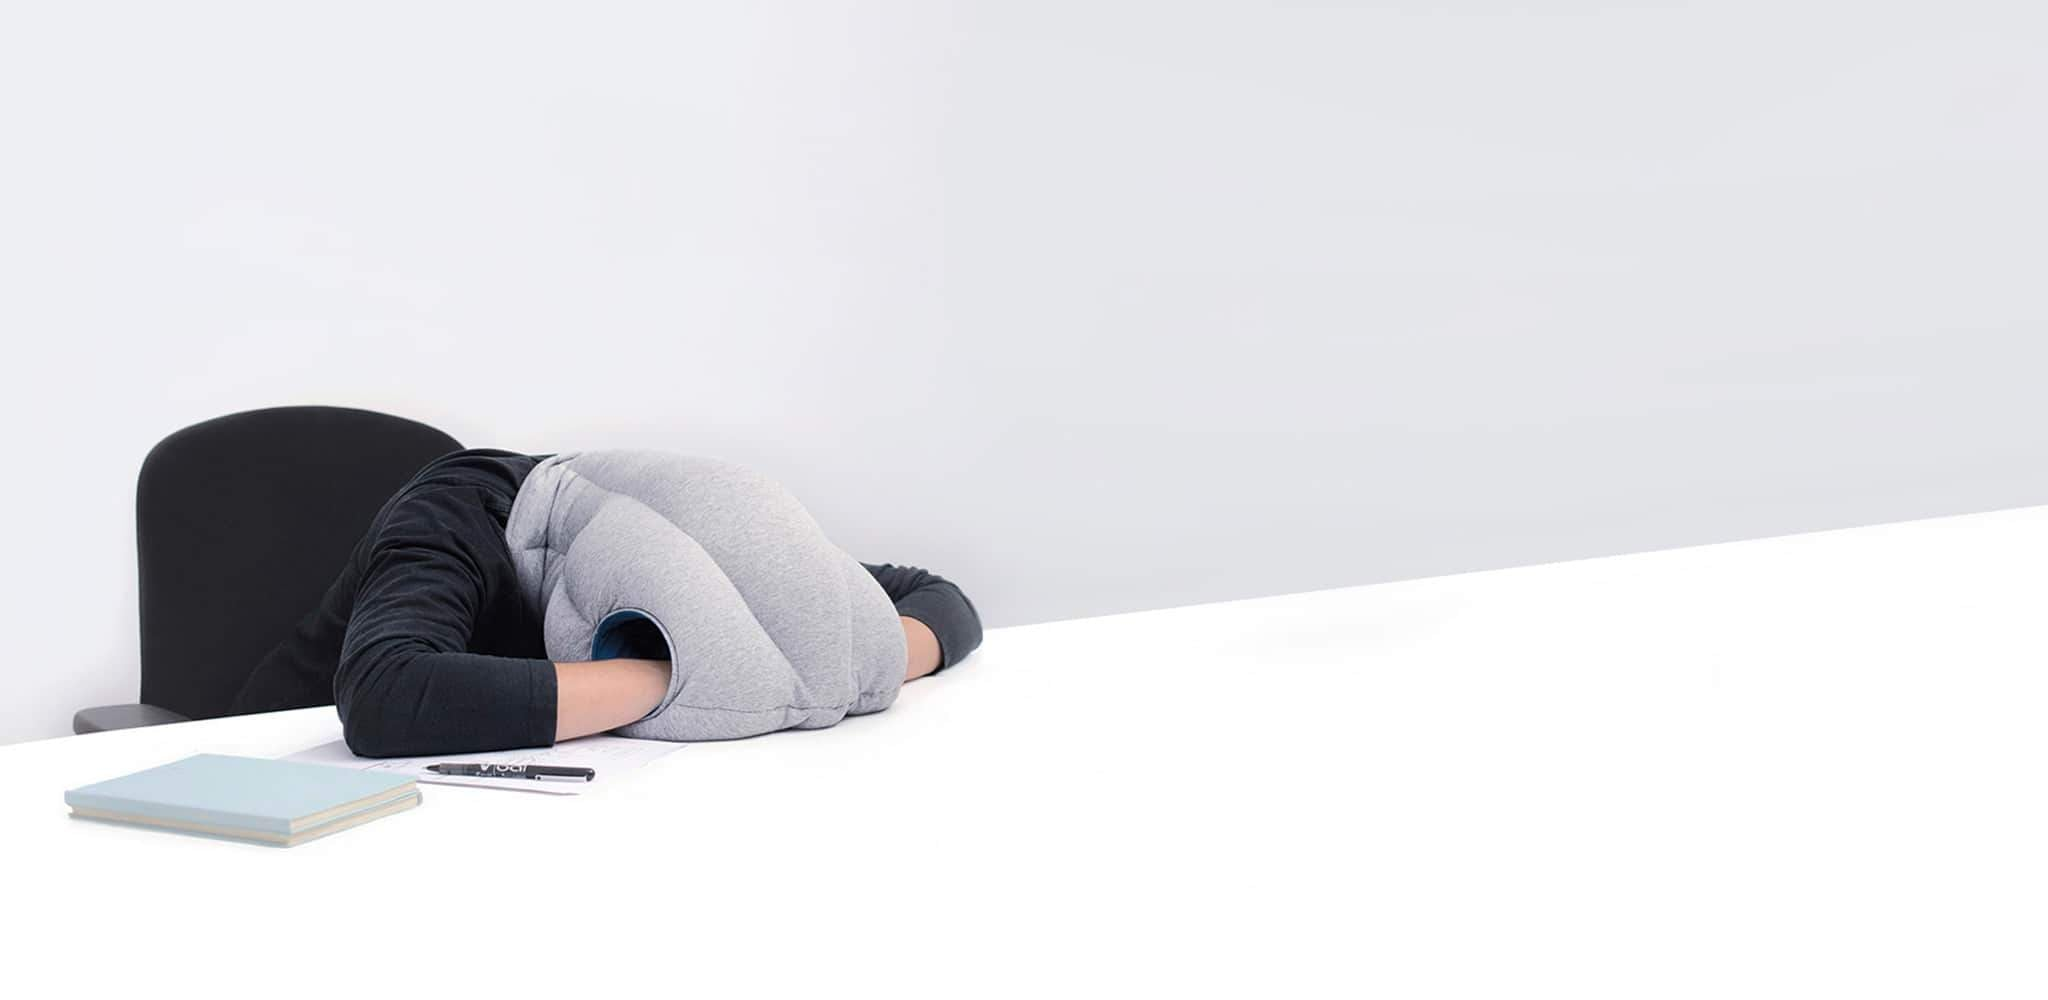 Person taking a nap at their desk in extreme comfort thanks to their OstrichPillow ORIGINAL.